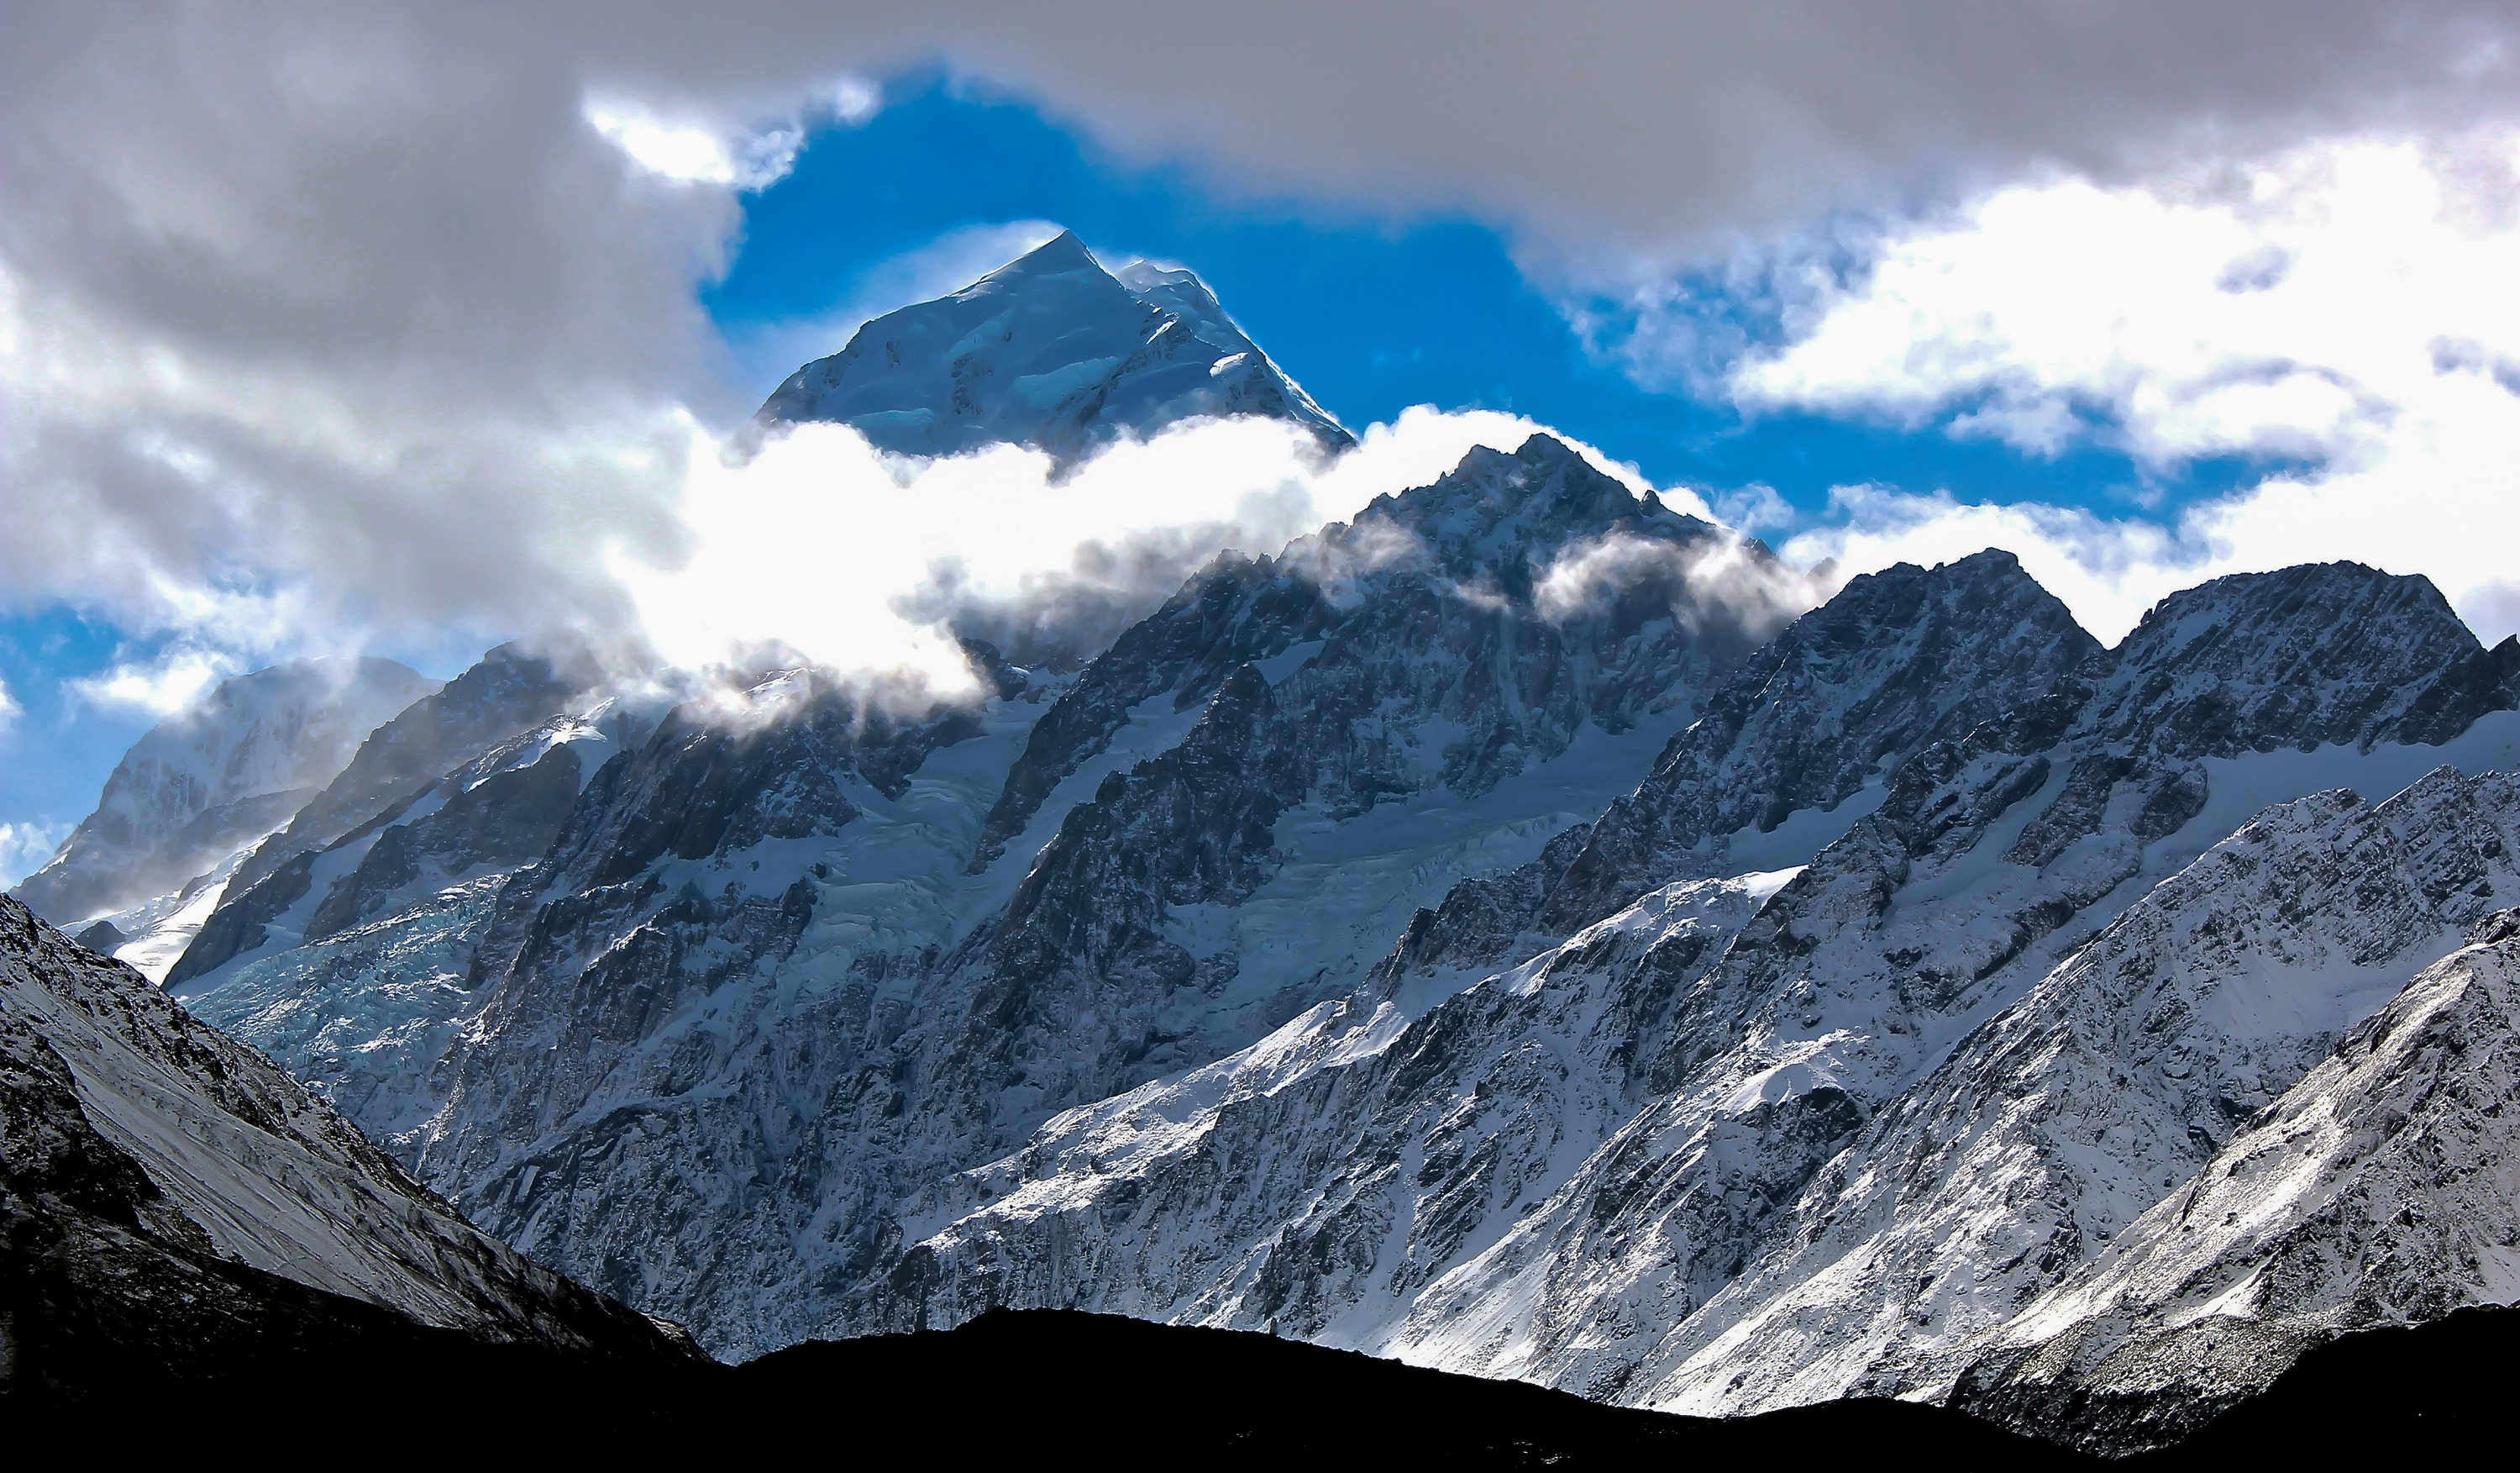 <div class='title'>           Mt Cook's Shadow         </div>                 <div class='description'>           Mt. Cook shrouded in clouds on an early Fall morning. Aoraki National Park, New Zealand. April, 2015.         </div>